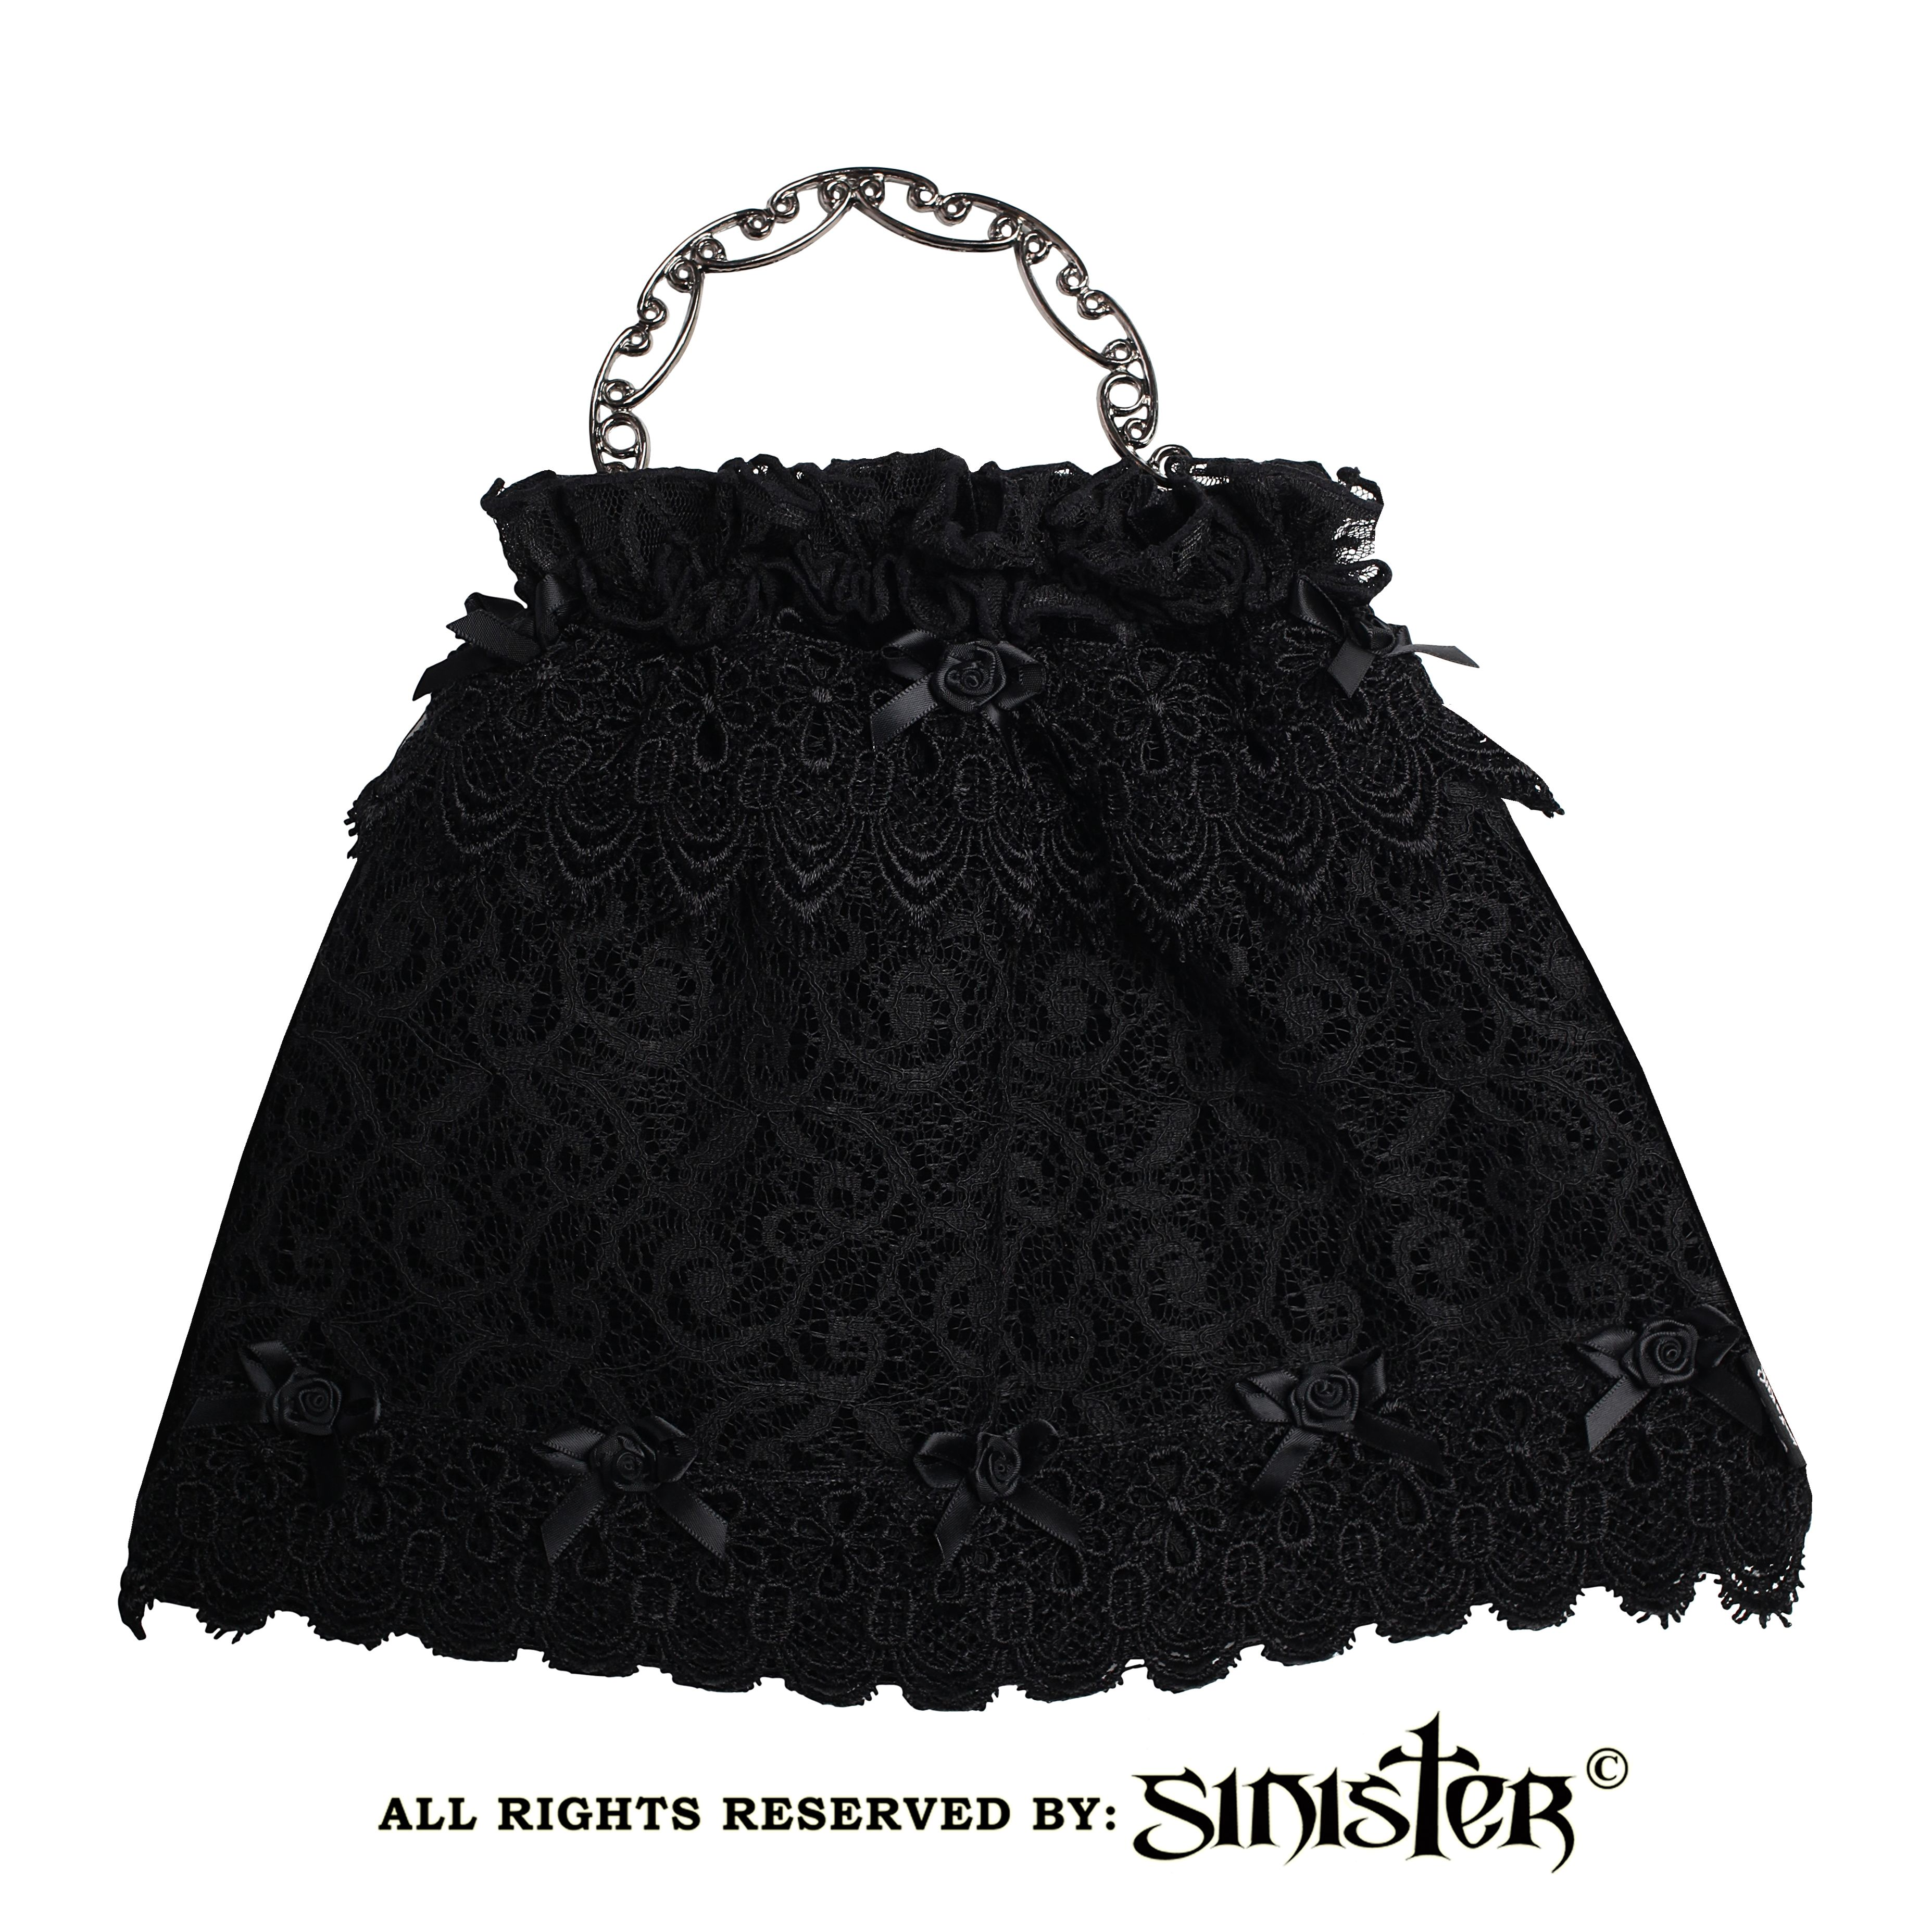 2075fff0c94ead Collection 2016 - Black velvet with Sicilian lace gothic evening bag with  purse fram metal opening